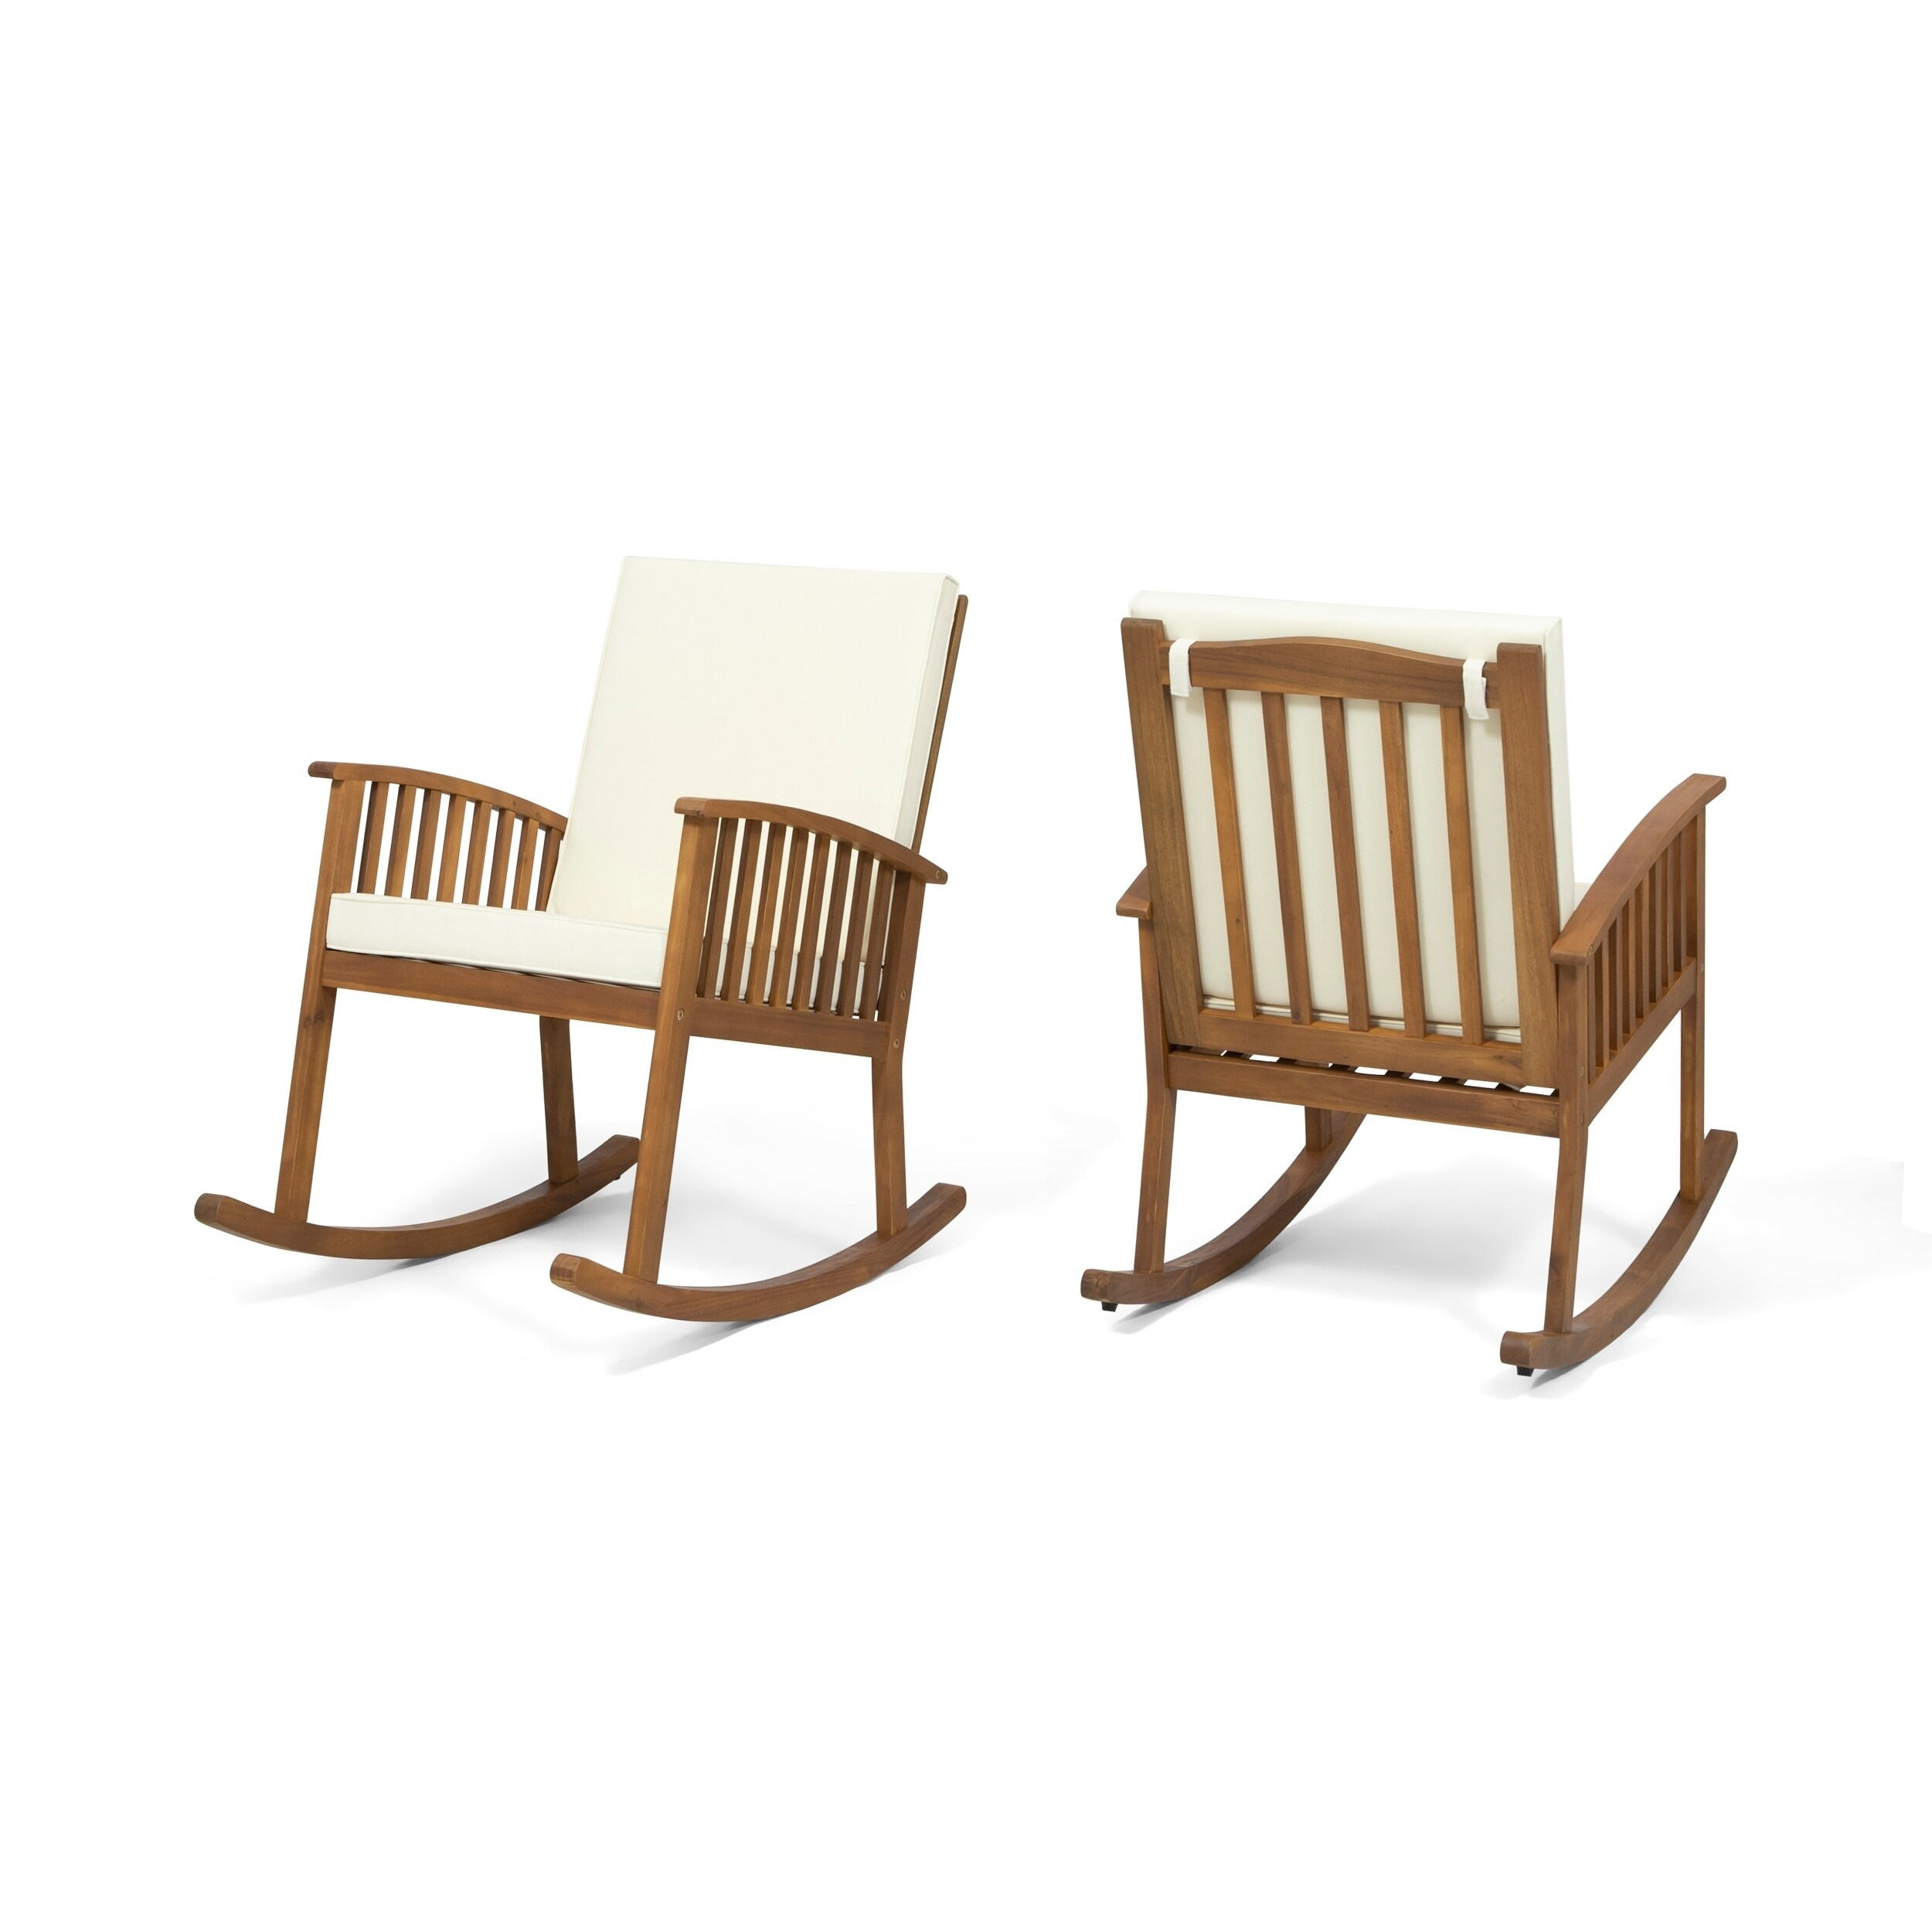 Outdoor Rocking Chair Set Casa Outdoor Acacia Wood Rocking Chairs Set Of 2 By Christopher Knight Home